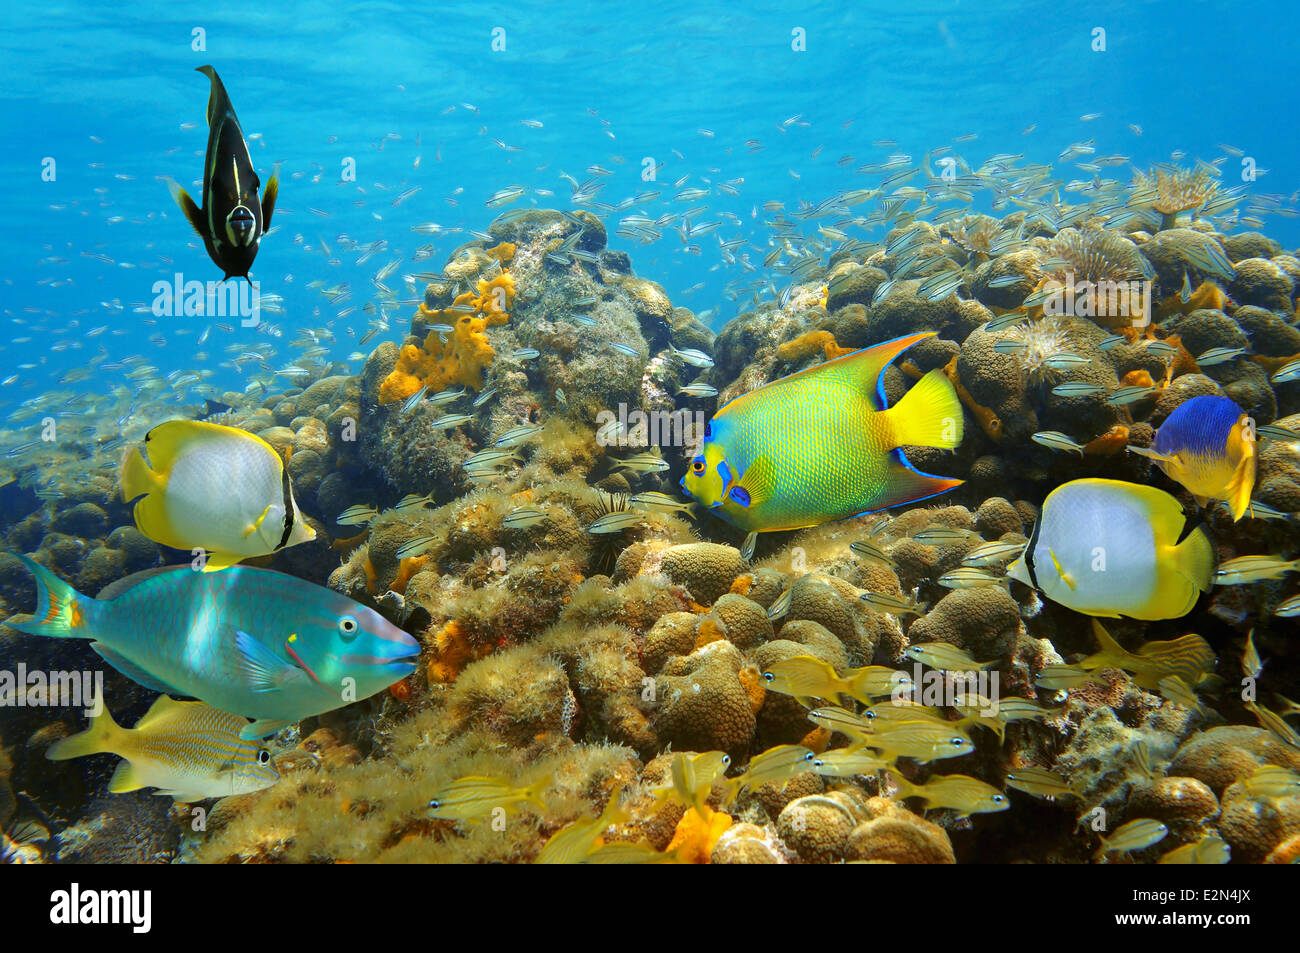 Thriving underwater life in a coral reef with colorful tropical fish - Stock Image